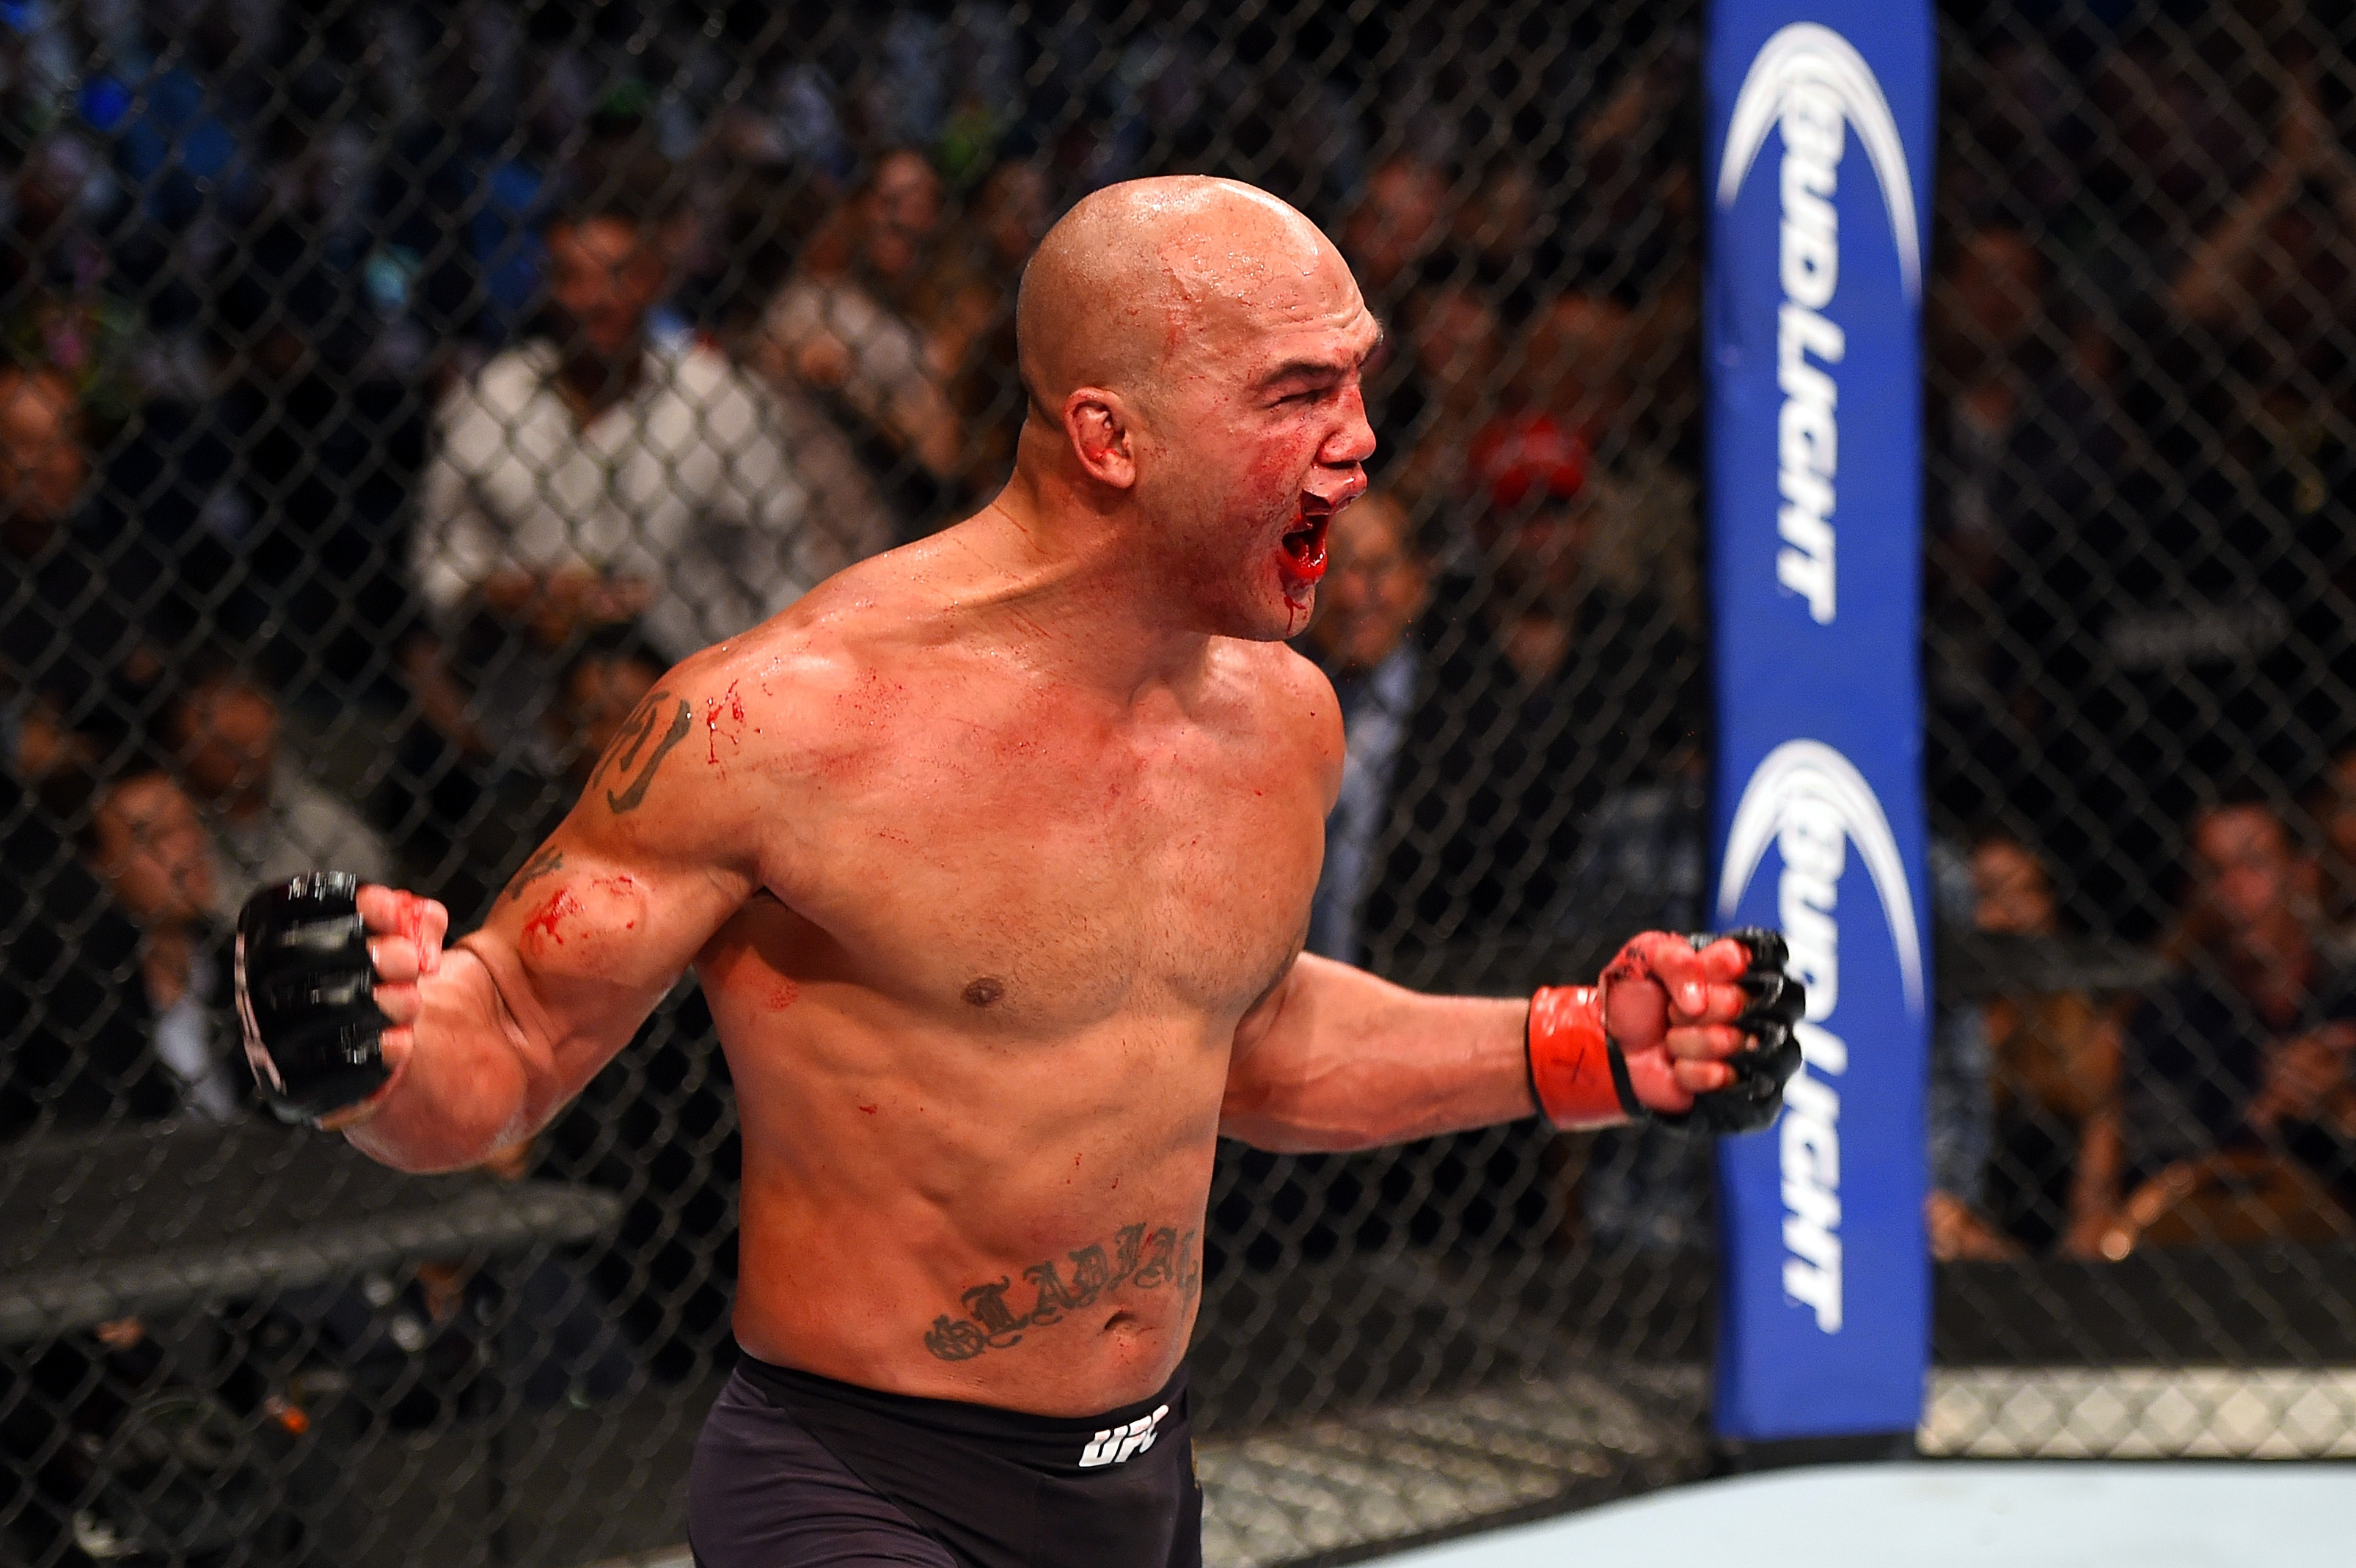 Robbie Lawler reacts to his victory over Rory MacDonald in their UFC welterweight title fight during the UFC 189 event inside MGM Grand Garden Arena on July 11, 2015 in Las Vegas, Nevada. (Photo by Josh Hedges/Zuffa LLC)